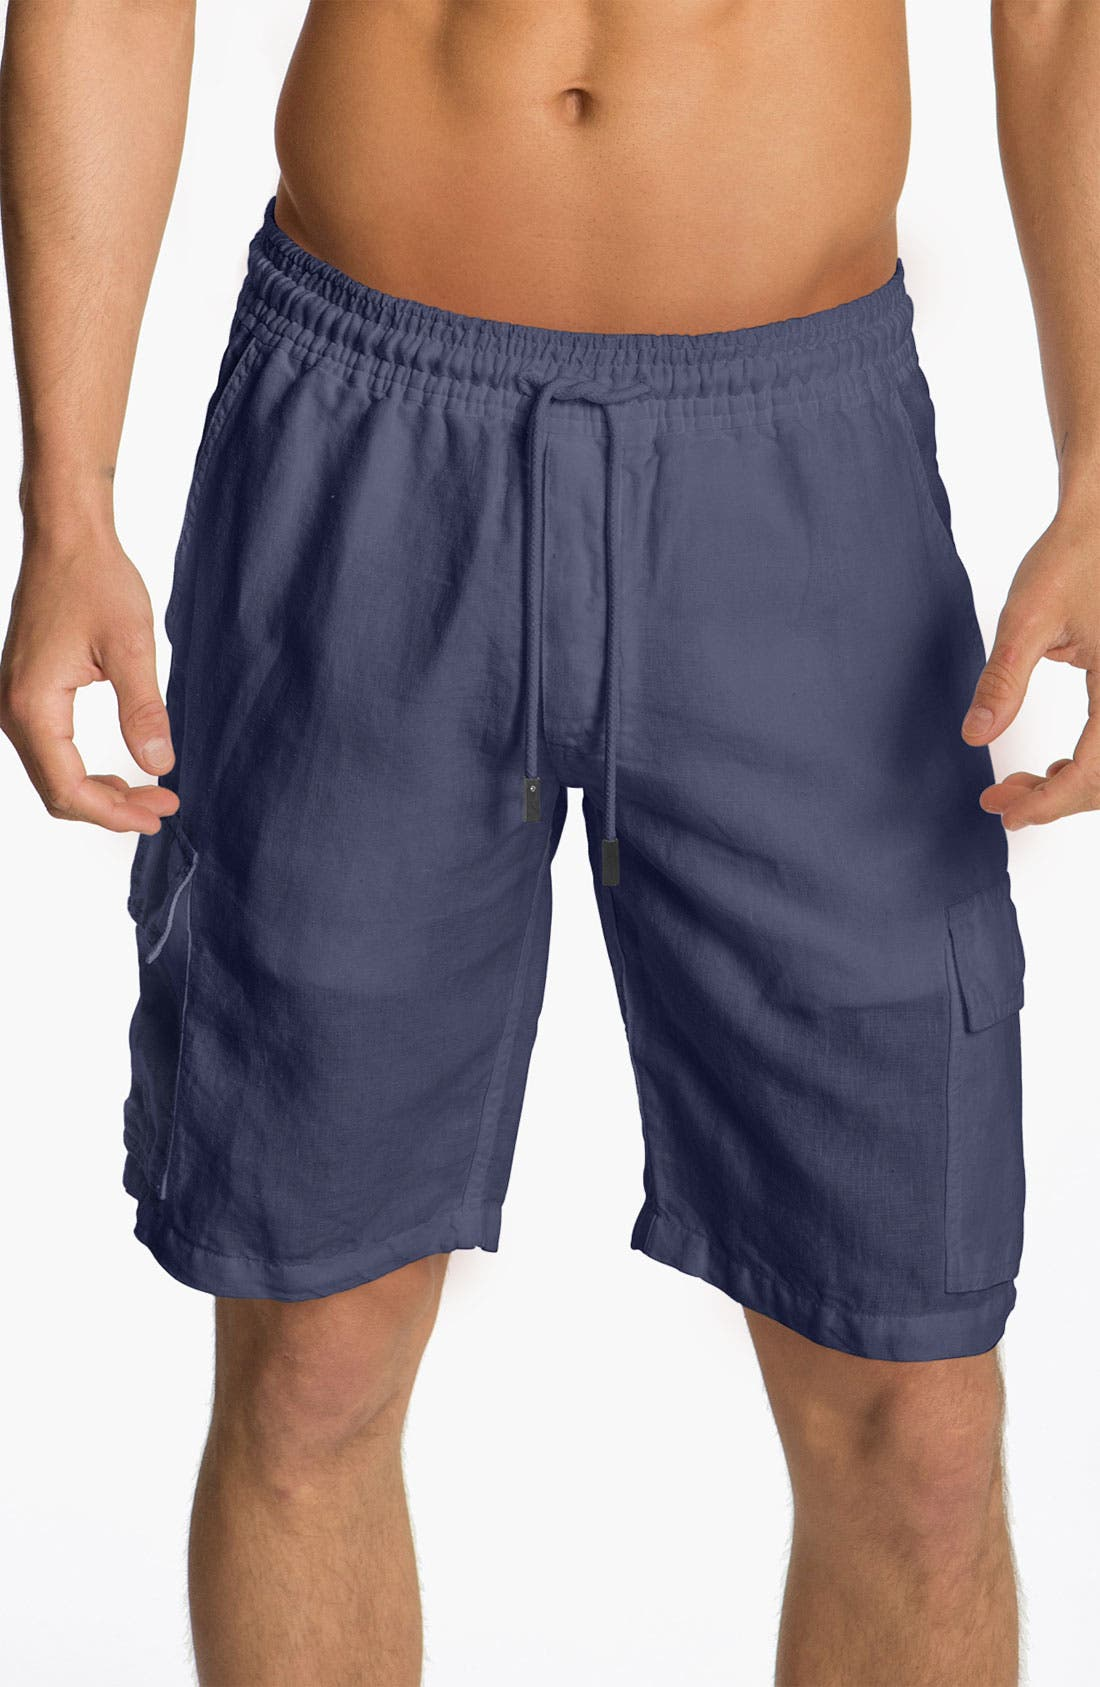 Alternate Image 1 Selected - Vilebrequin 'Baie' Linen Shorts